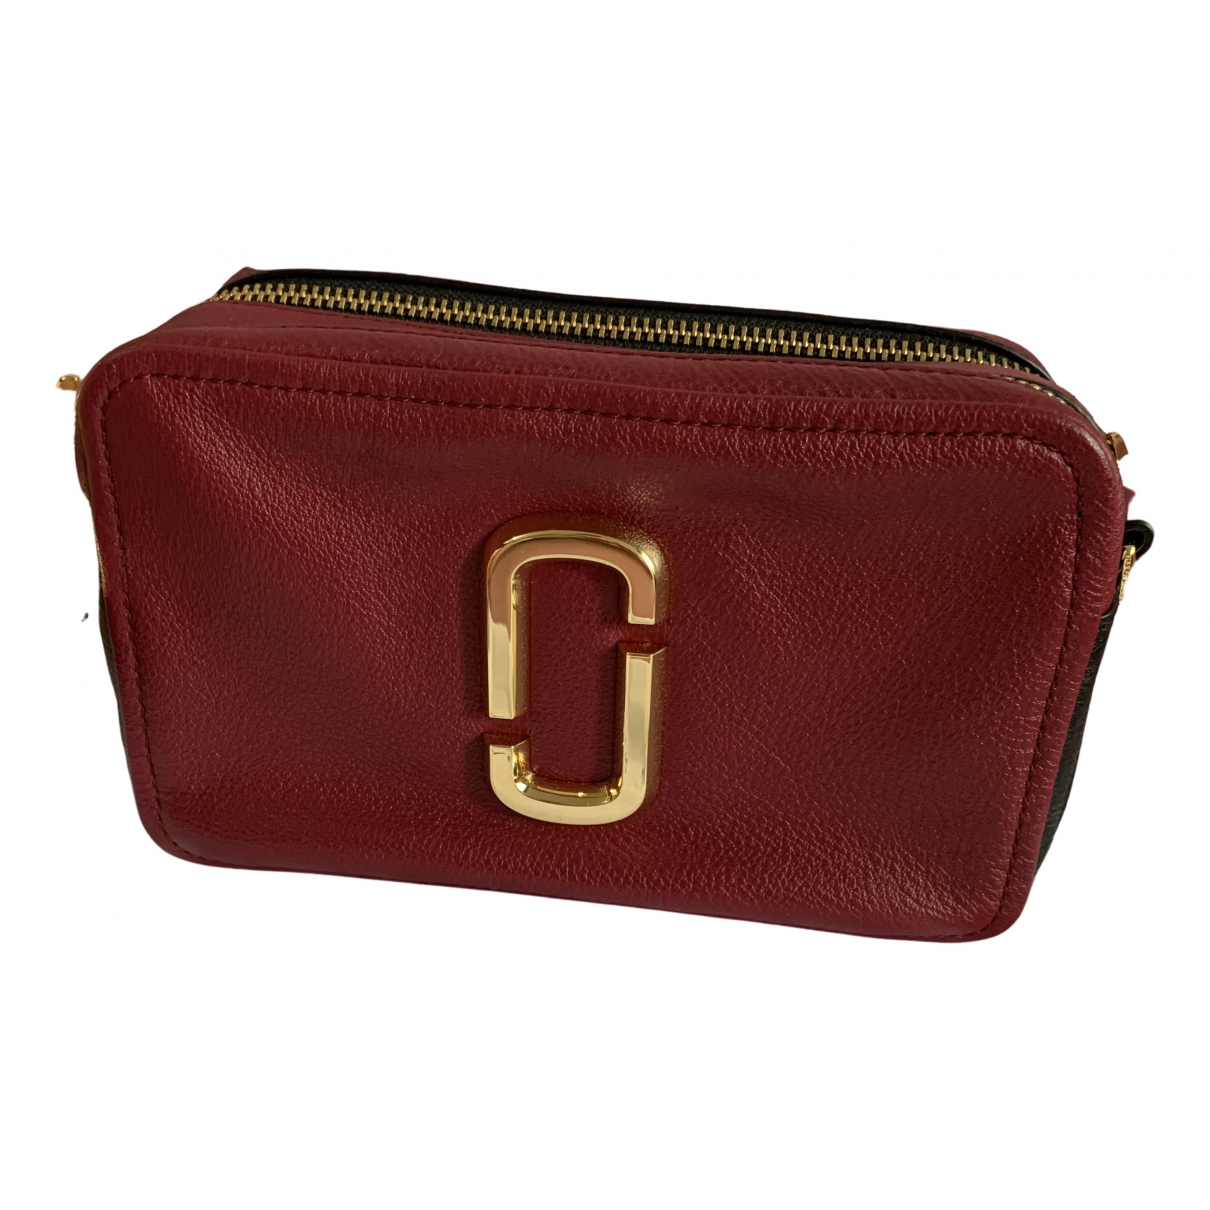 Marc Jacobs Snapshot Burgundy Leather handbag for Women N